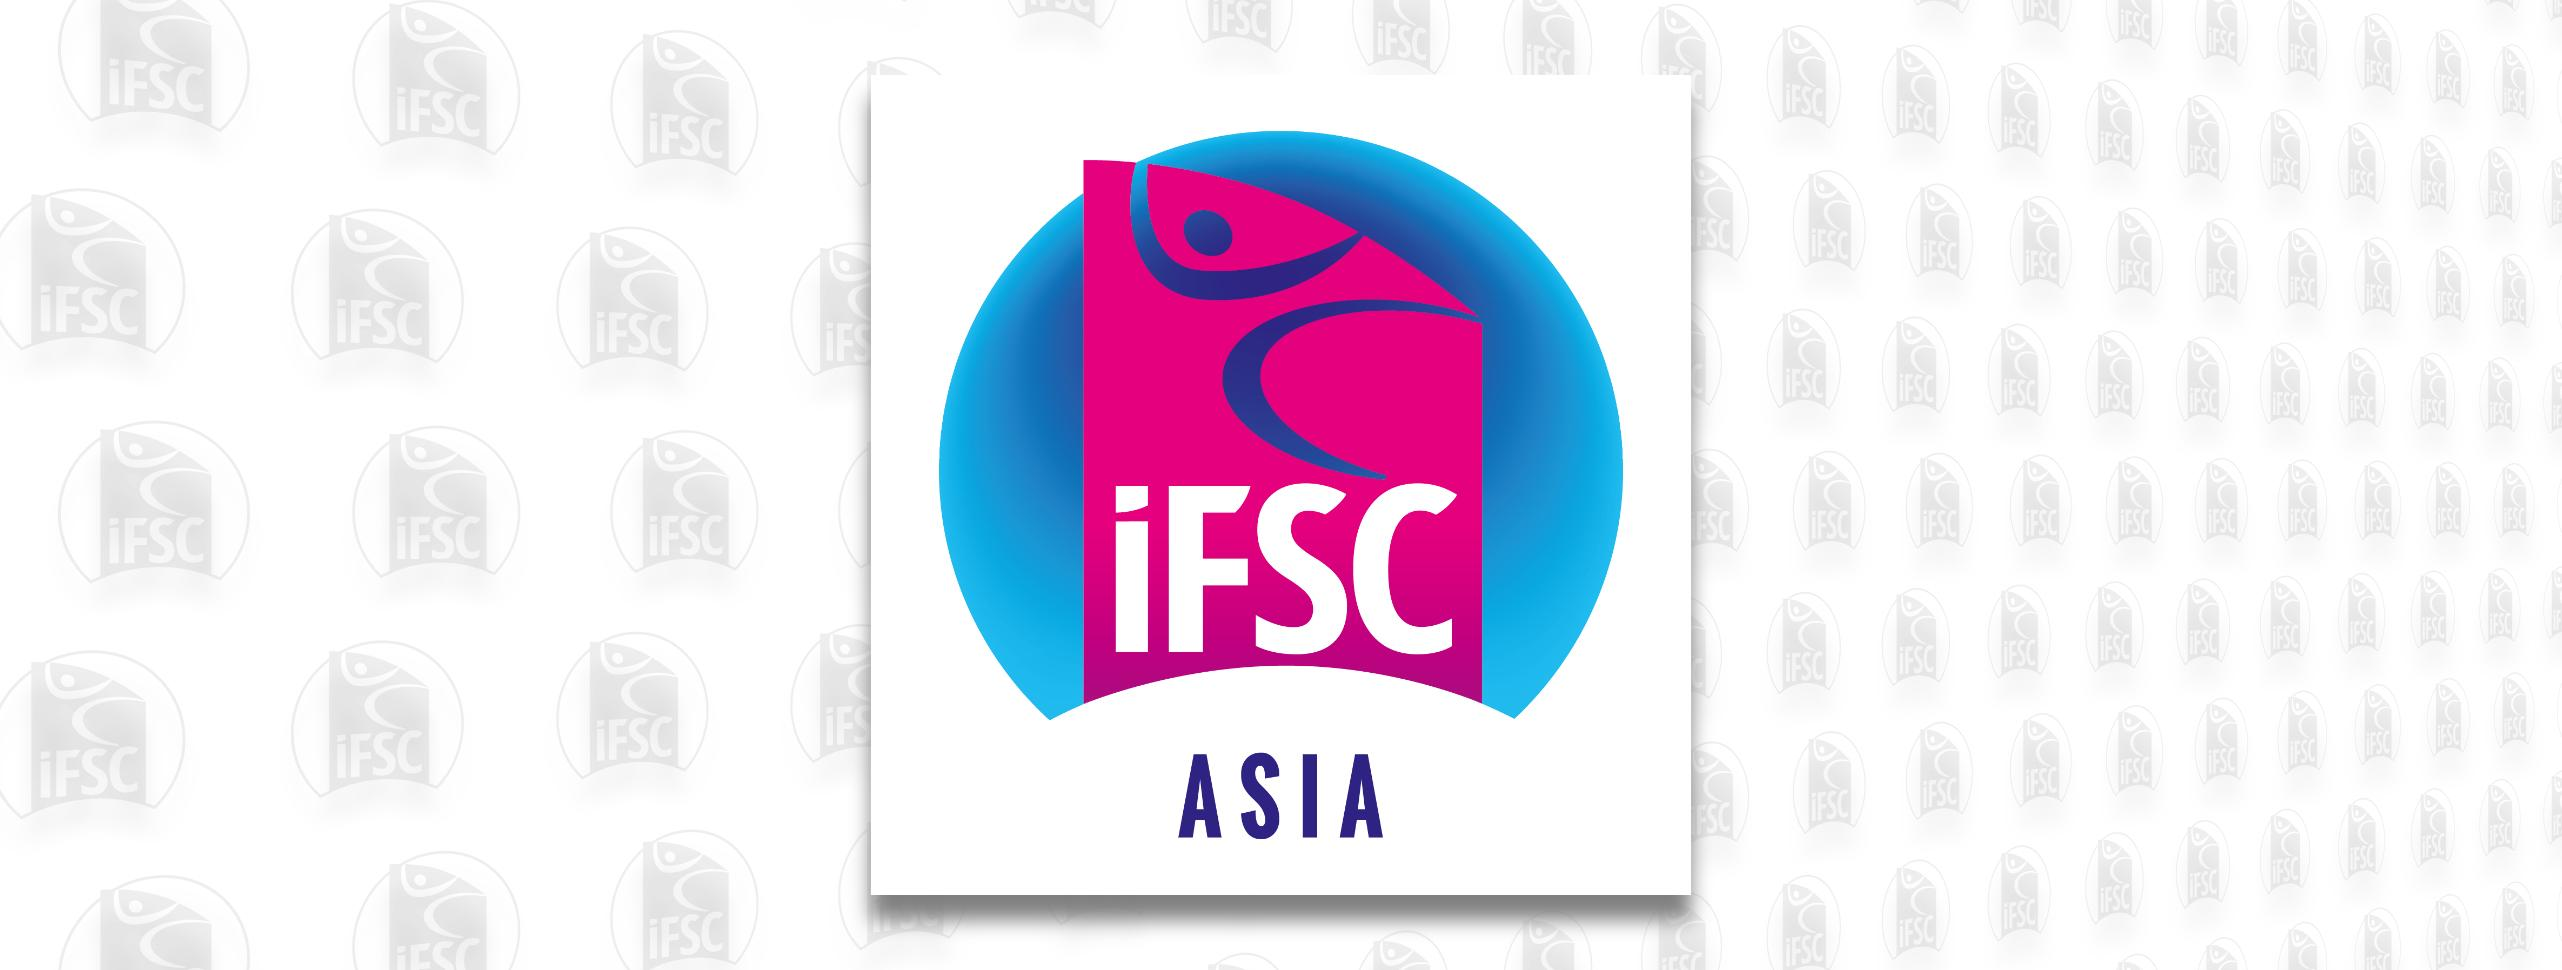 ZHIXIN LI ELECTED PRESIDENT OF THE IFSC ASIAN COUNCIL